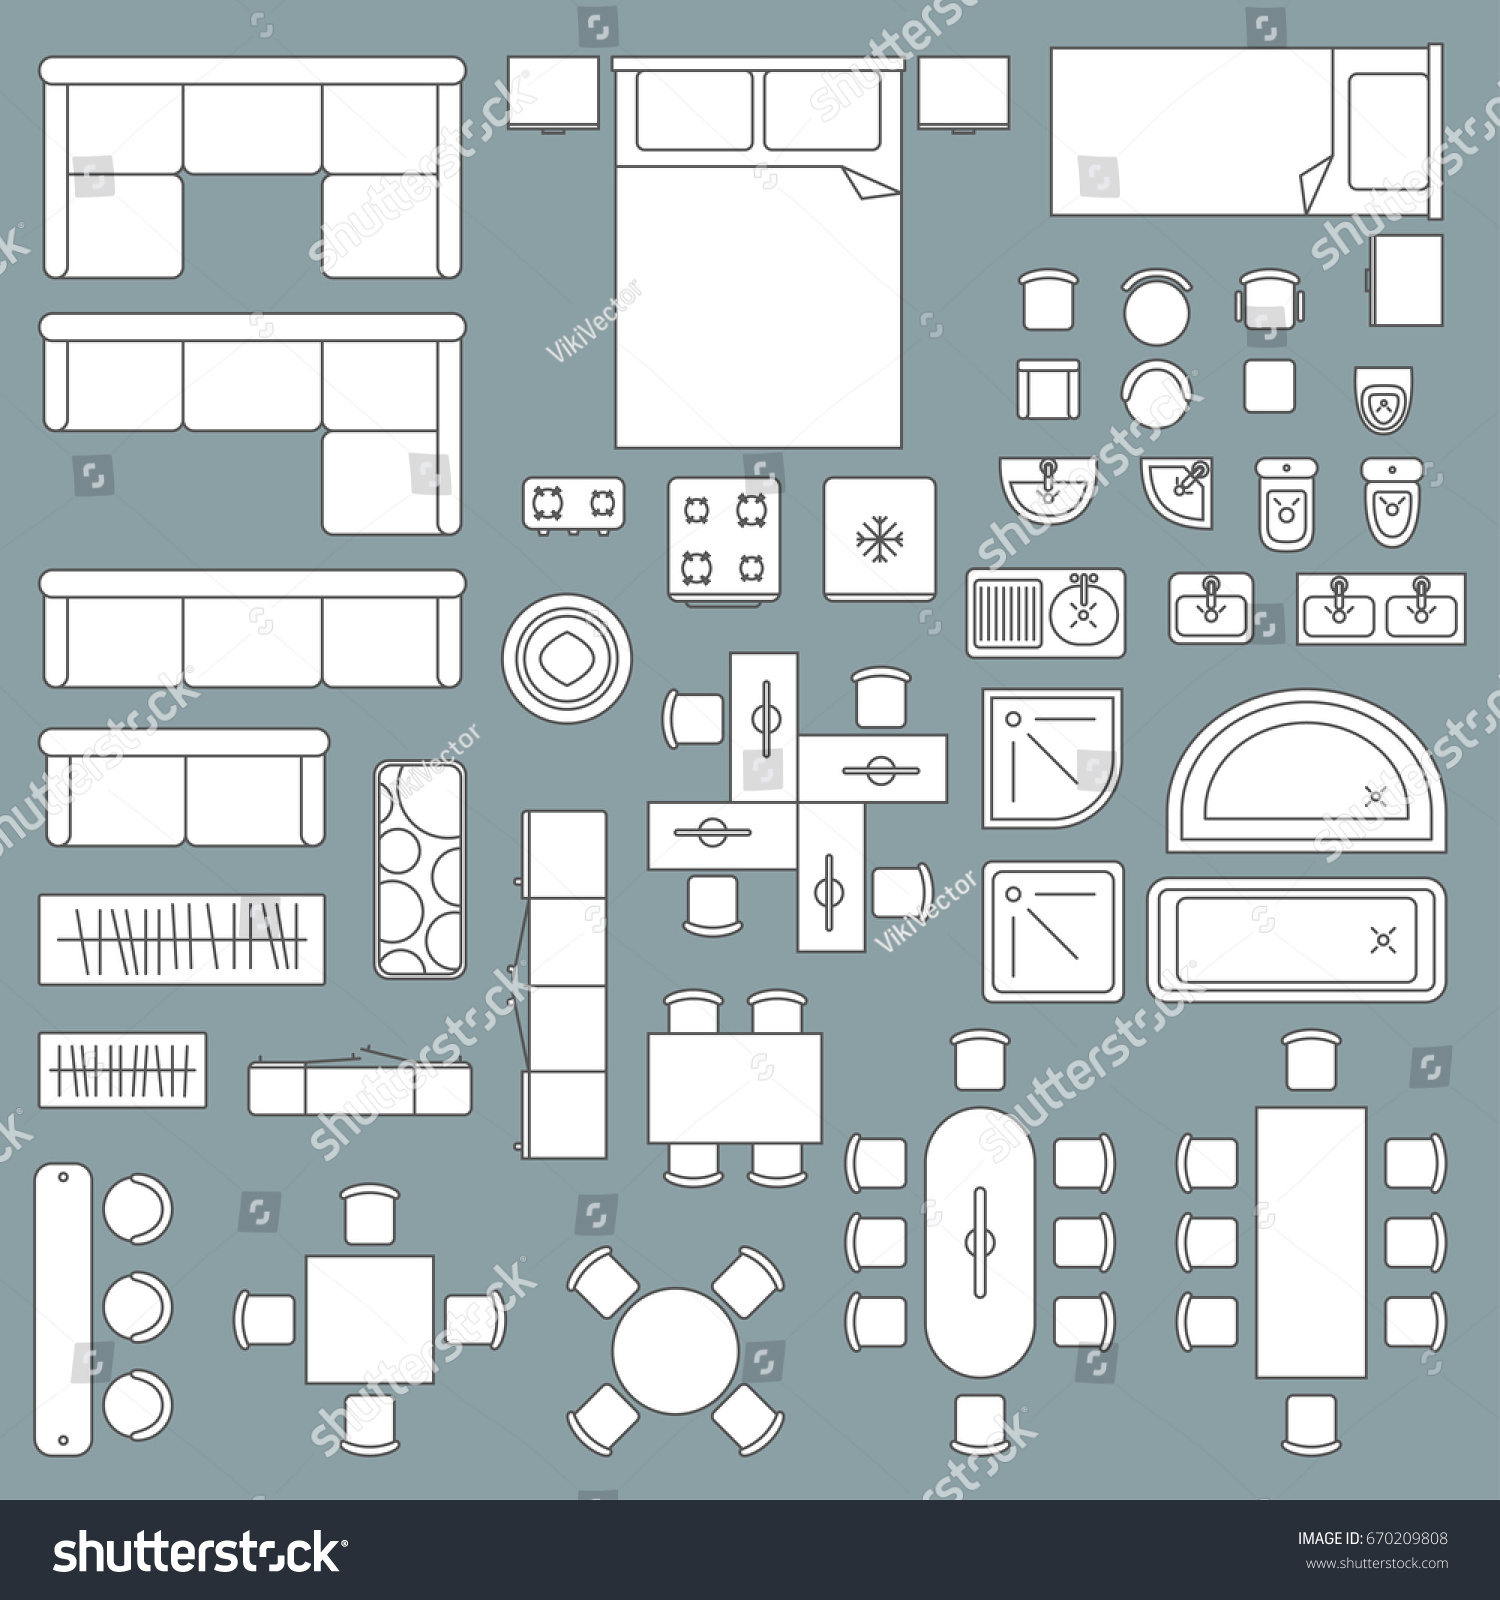 Furniture top view architecture plan home stock vector for House design top view